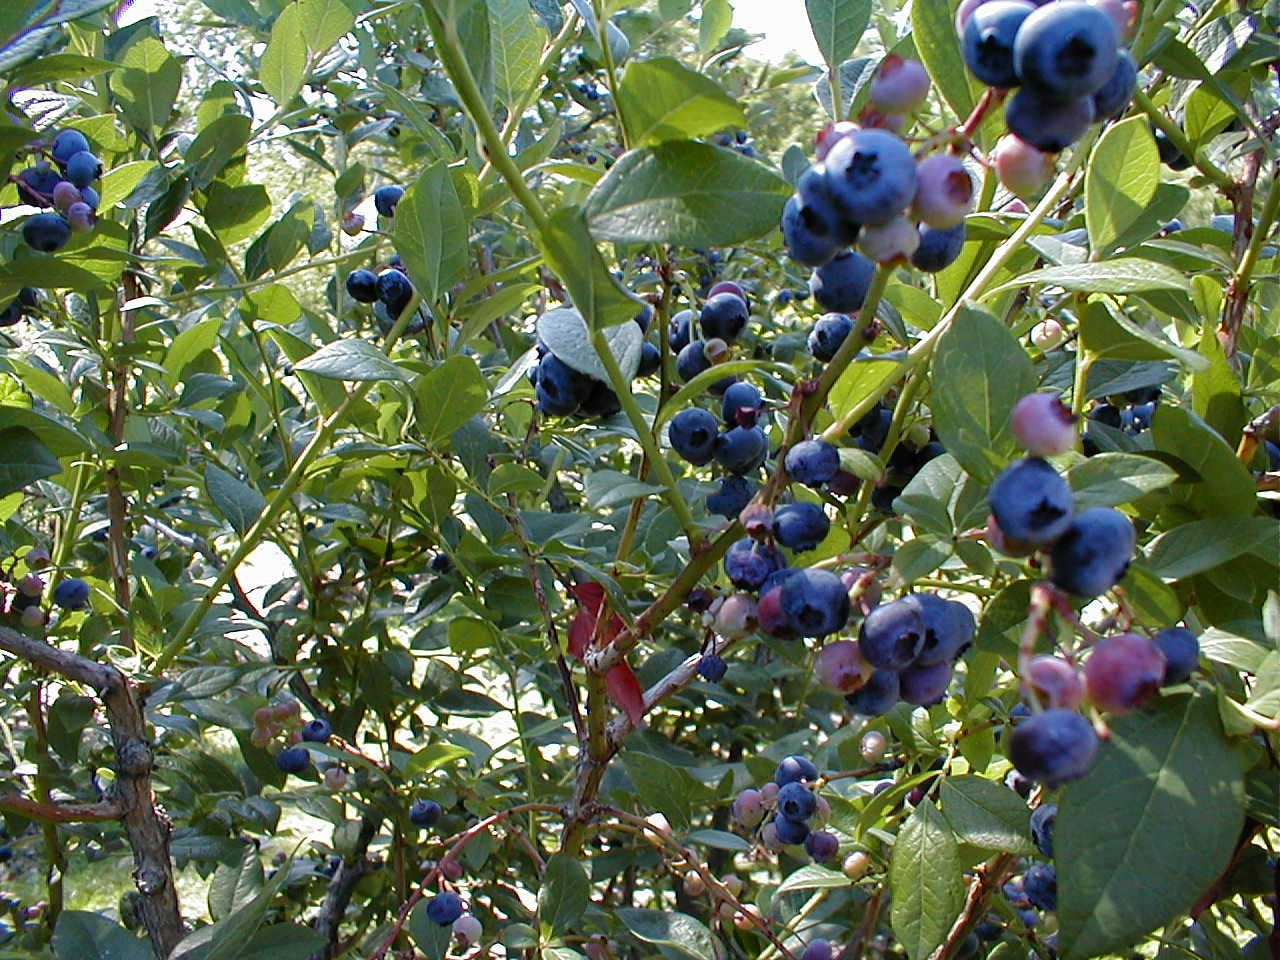 Blueberry Bush Height 3 12 Width 3 8 White Or Pink Flowers In